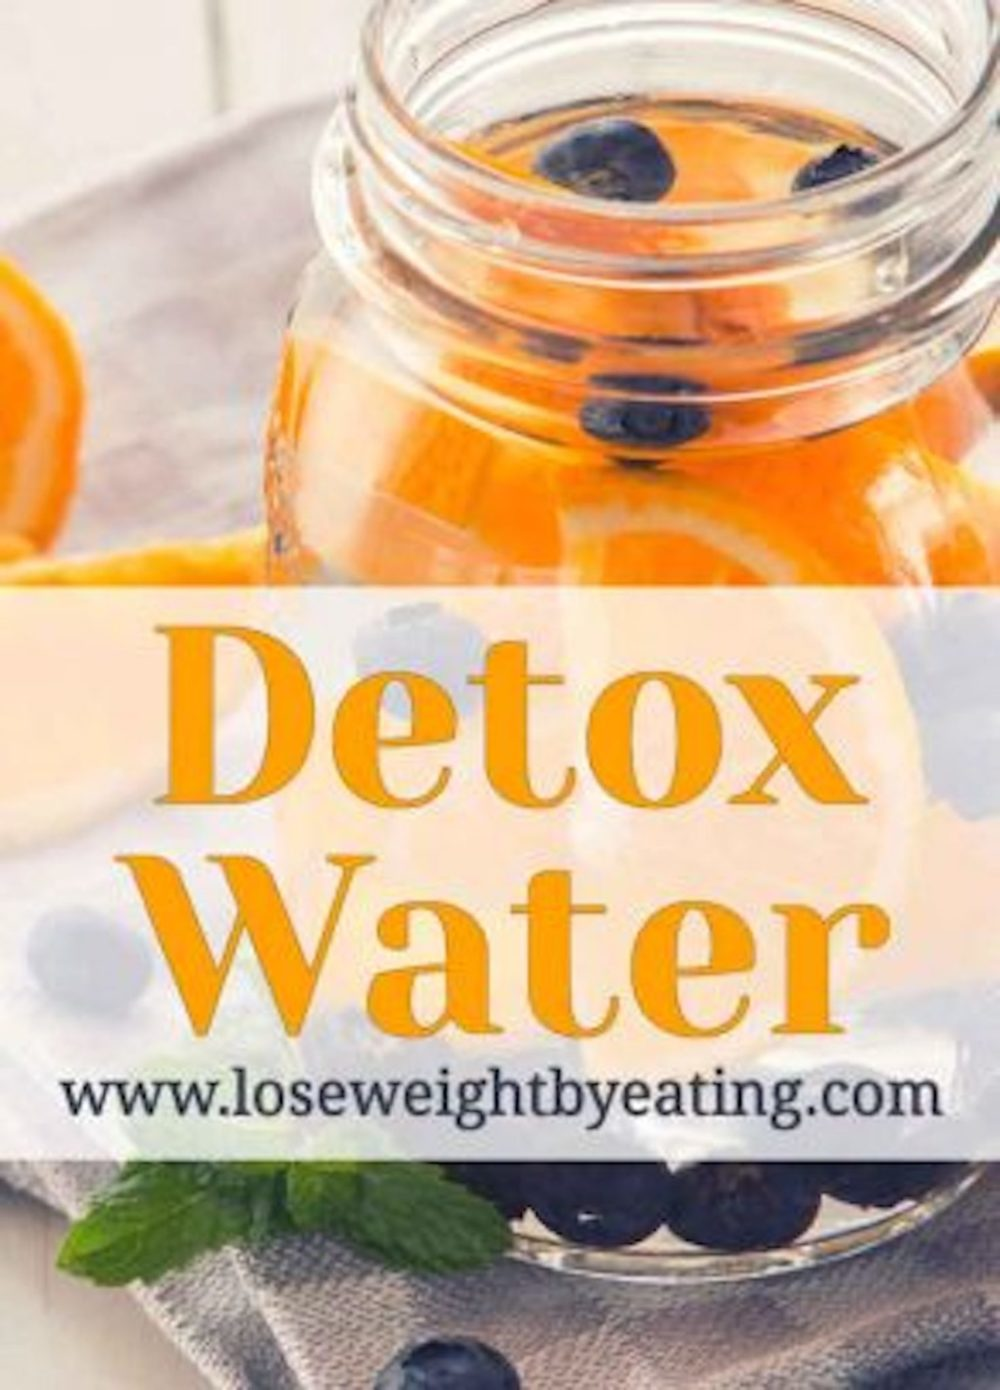 Detox Water: Top Recipes for Fast